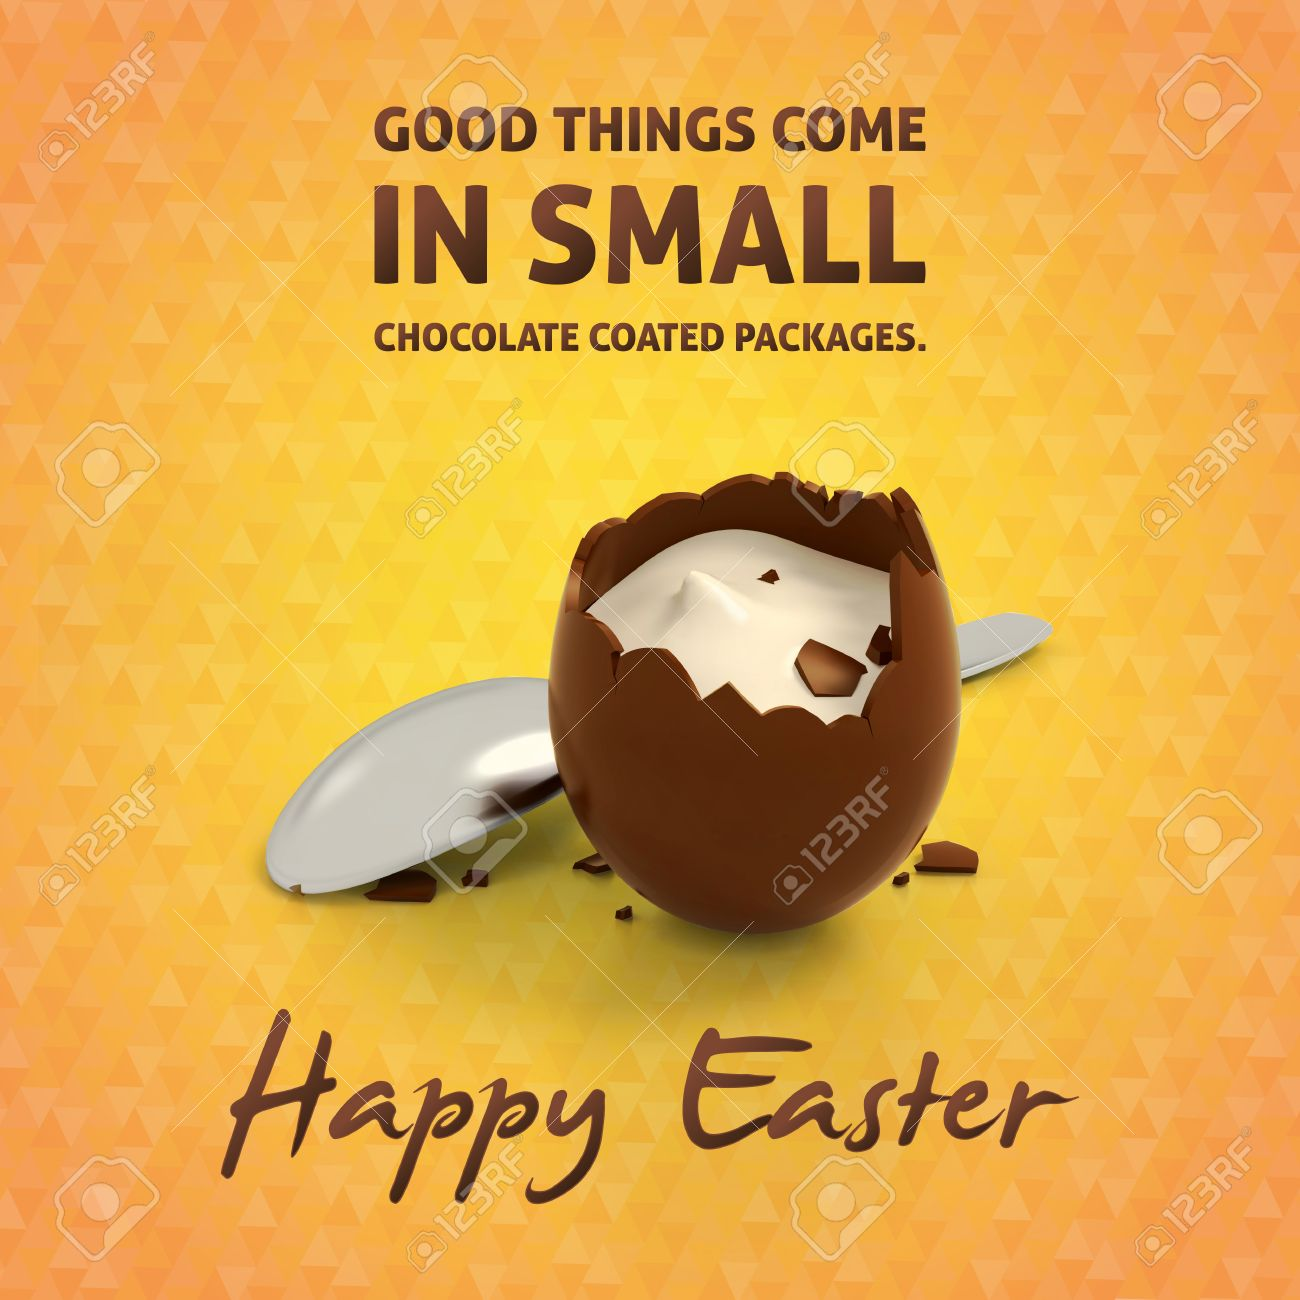 Happy Easter Eggs Quotes And Illustration Of Crashed Chocolate ...